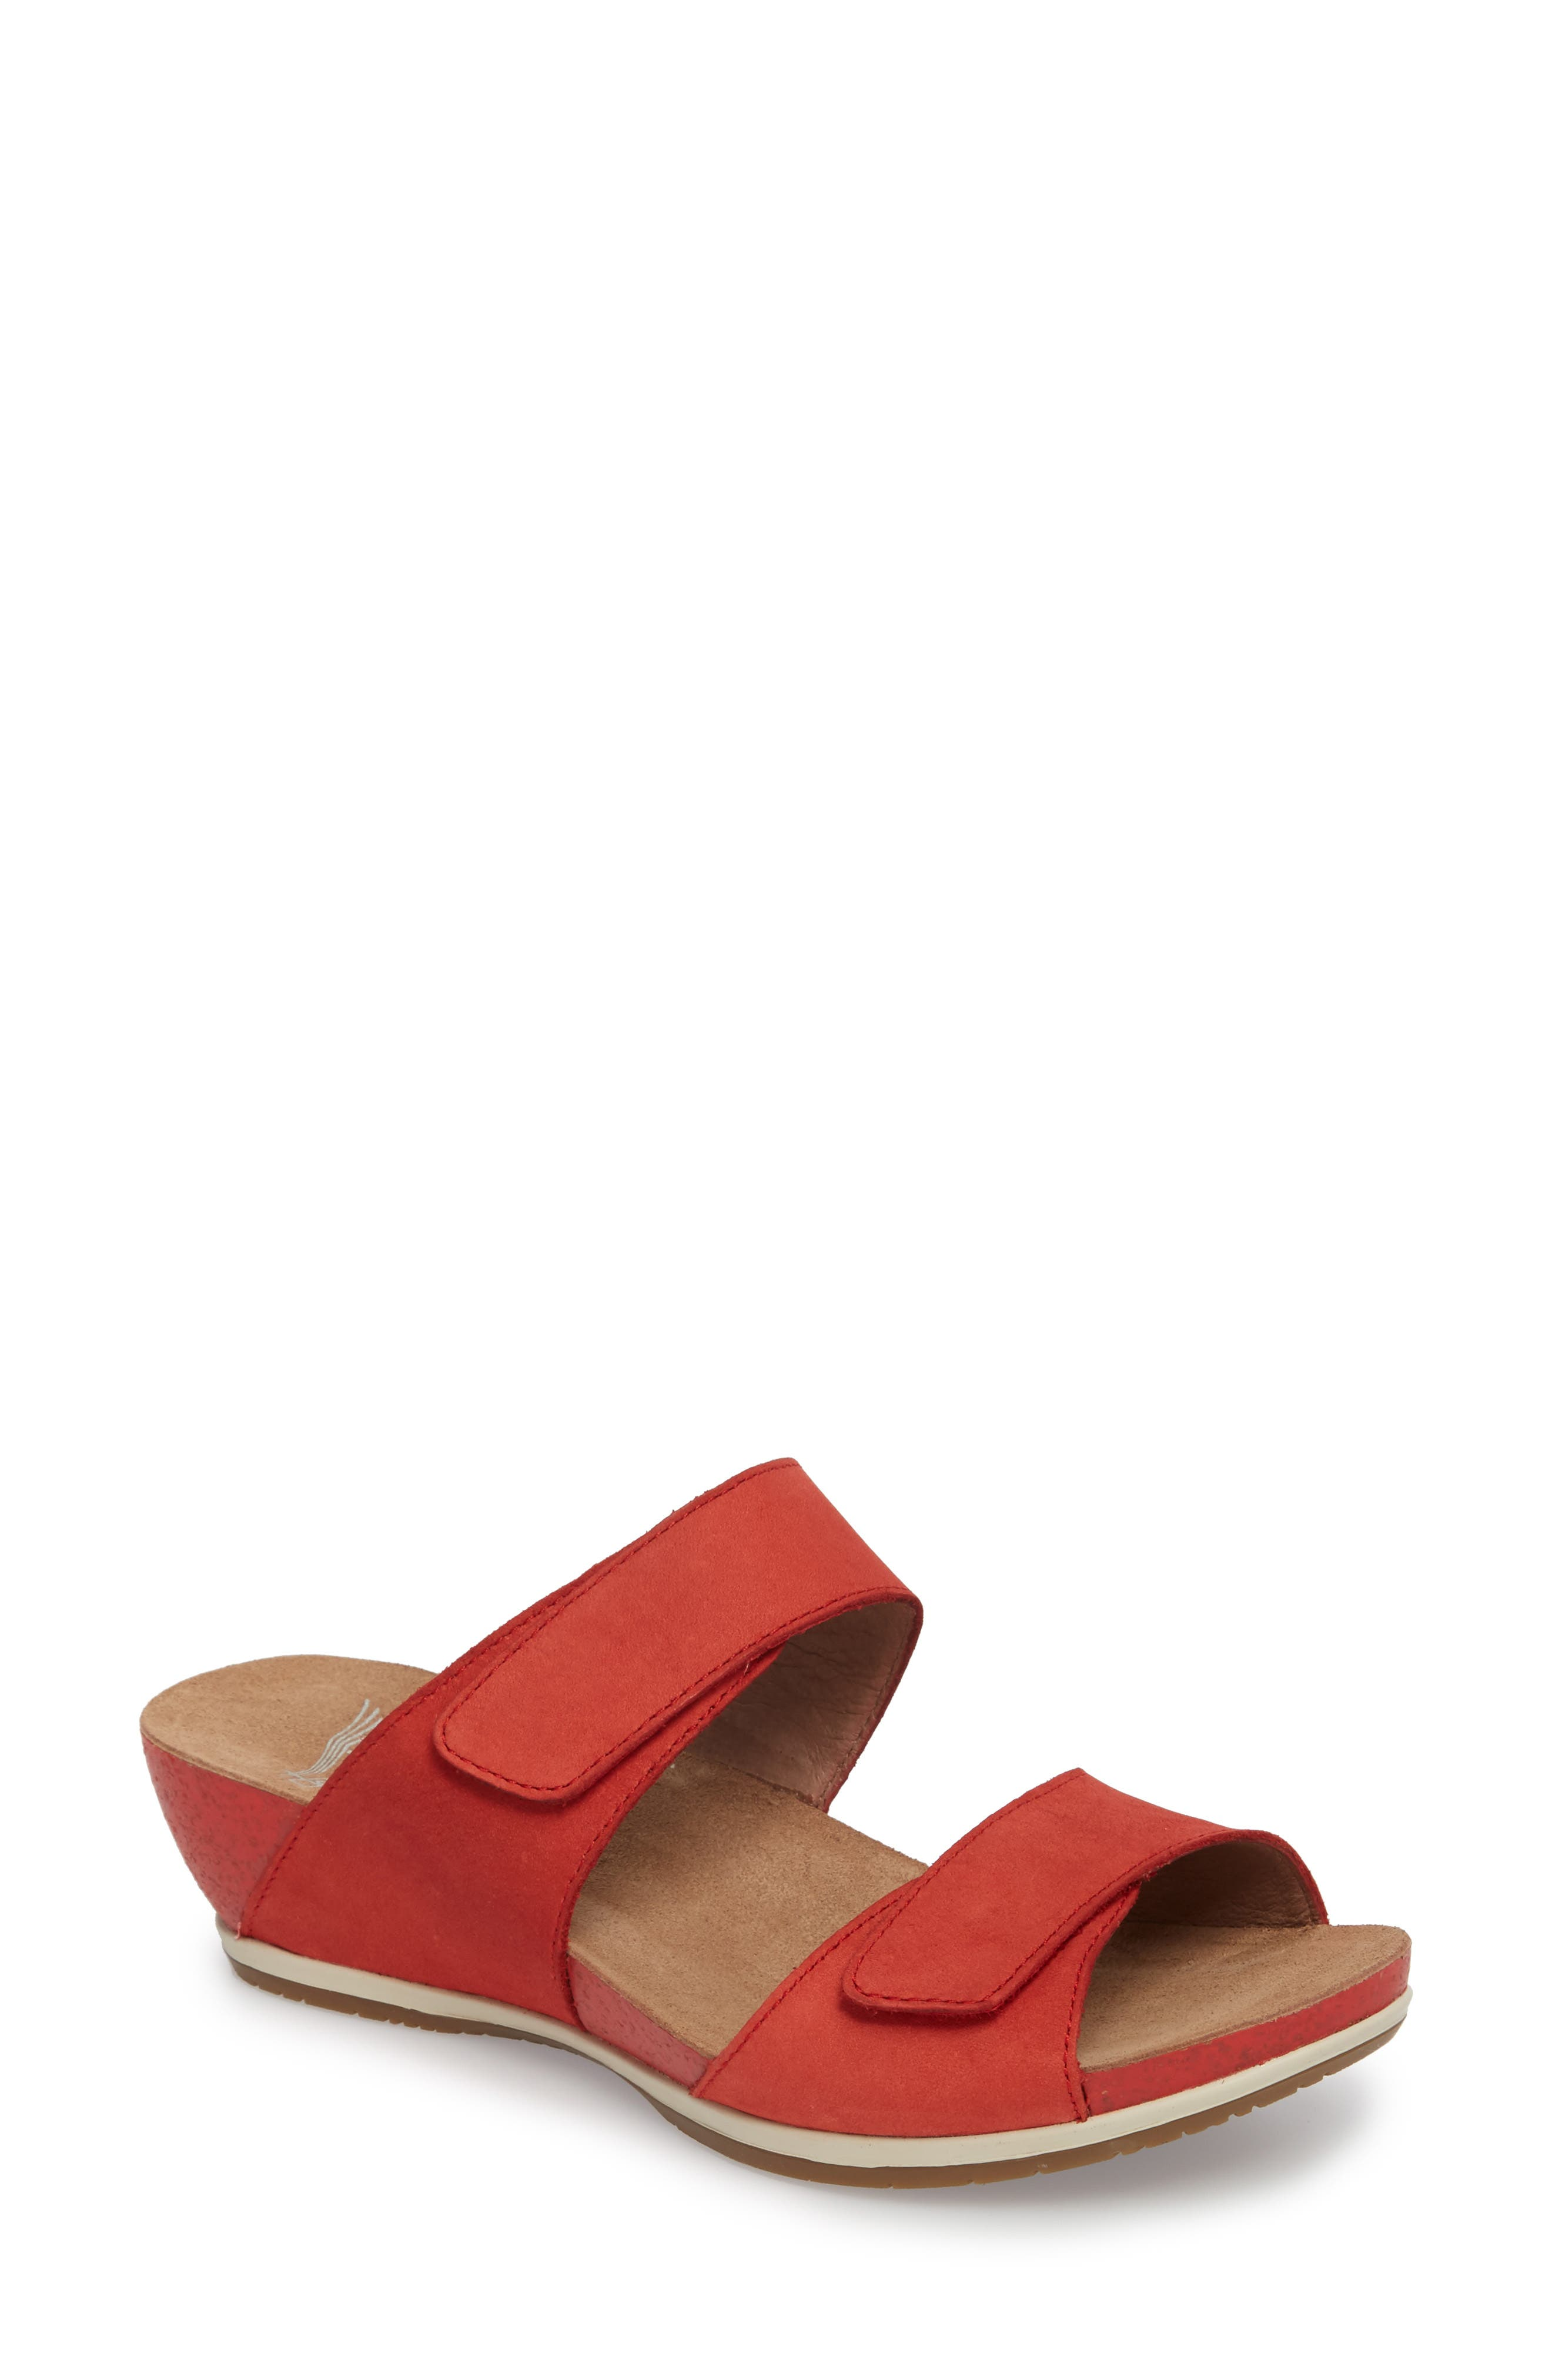 Vienna Slide Sandal,                             Main thumbnail 4, color,